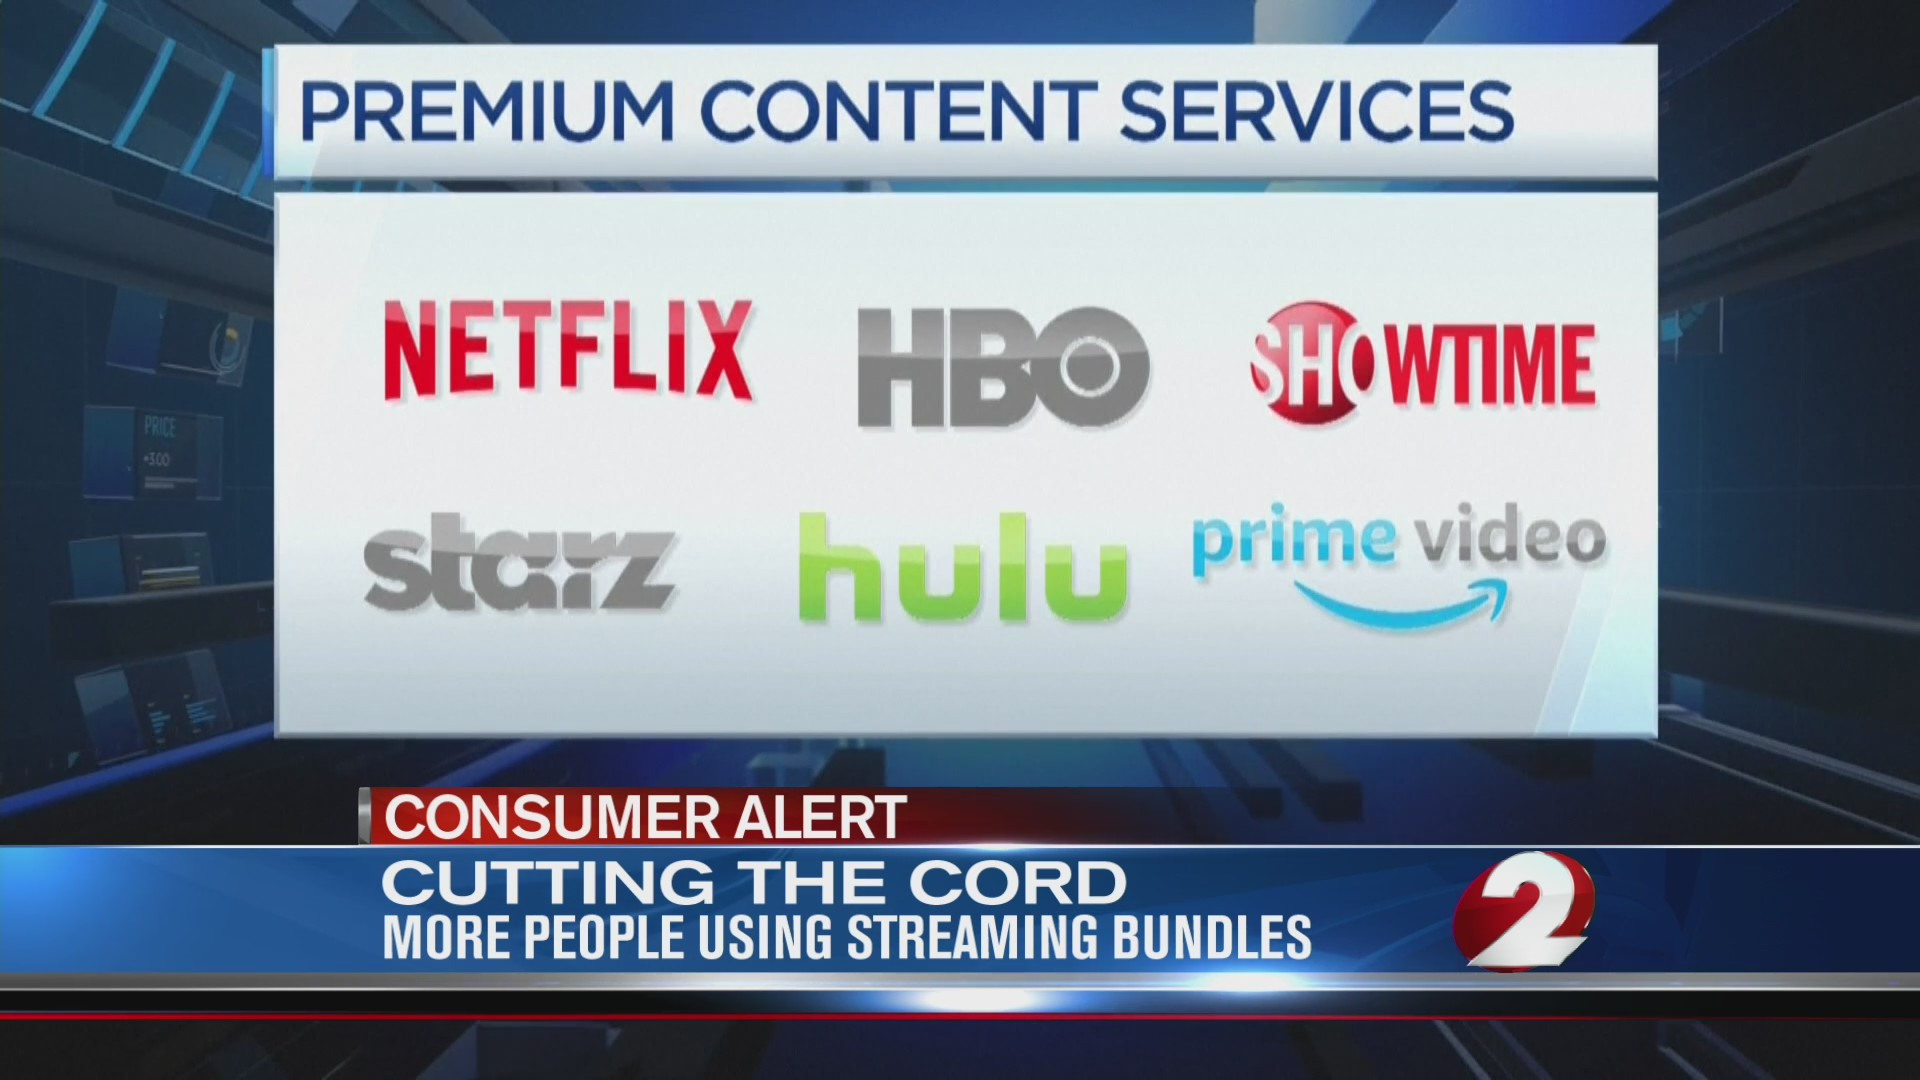 More people using streaming bundles